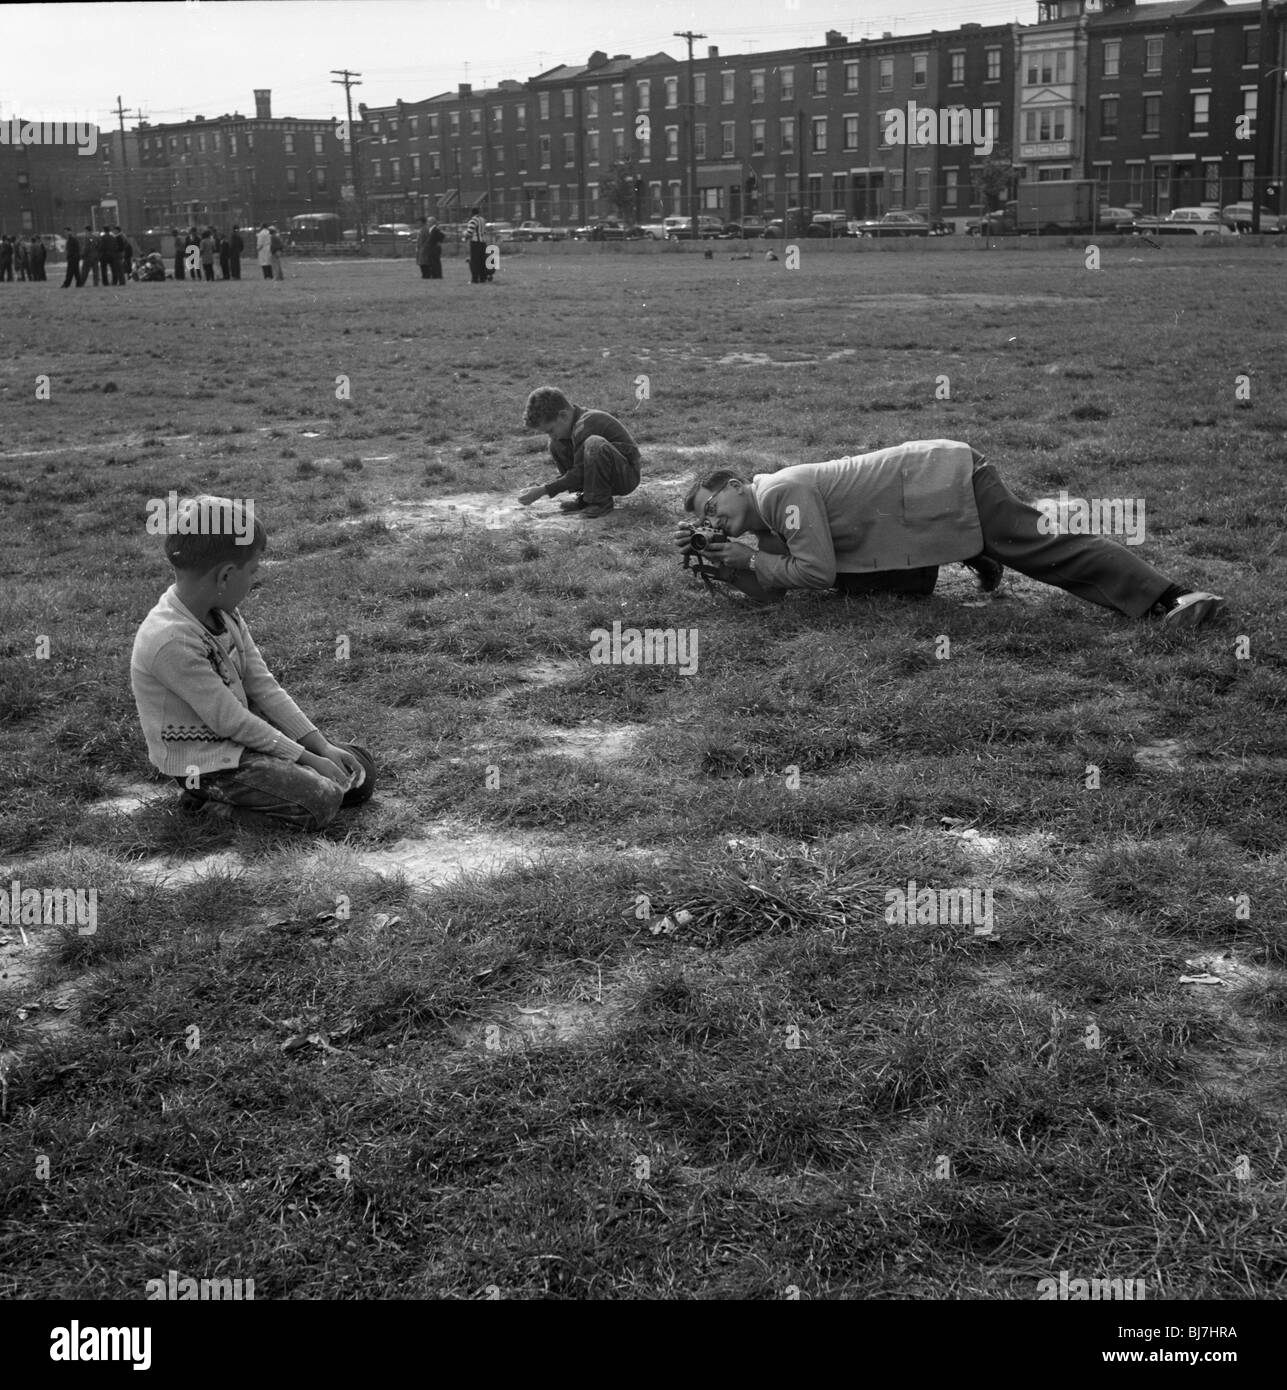 A photographer photographs a small child using a 35mm rangefinder camera in a park in South Philadelphia. - Stock Image